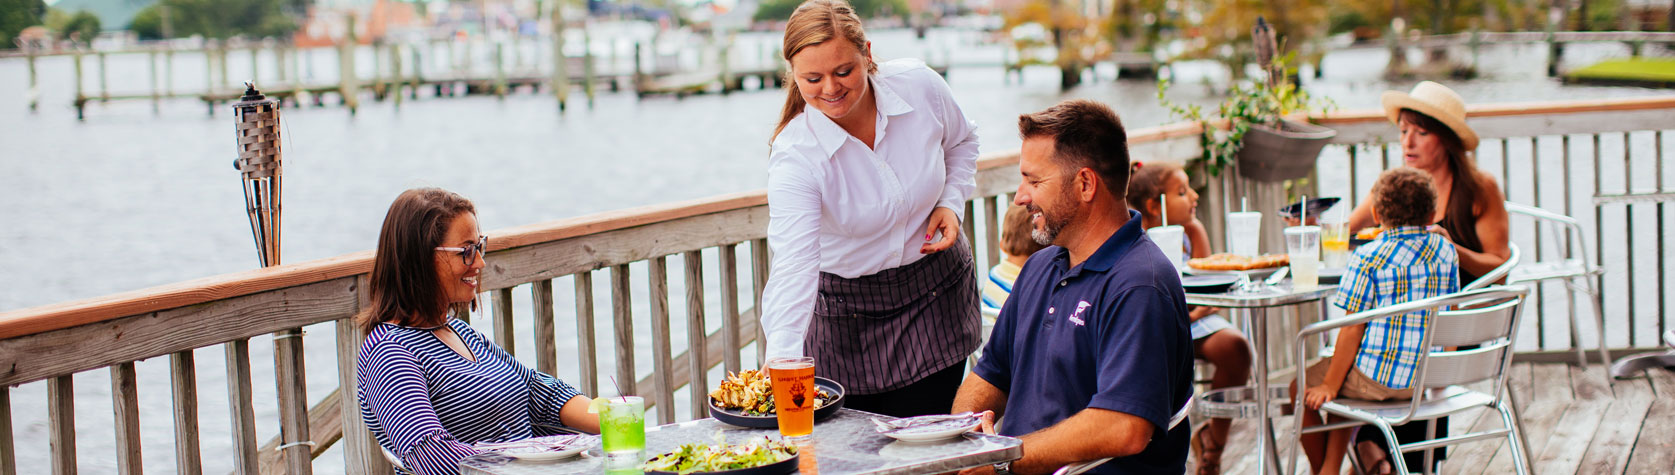 couple being served food on waterfront restaurant patio